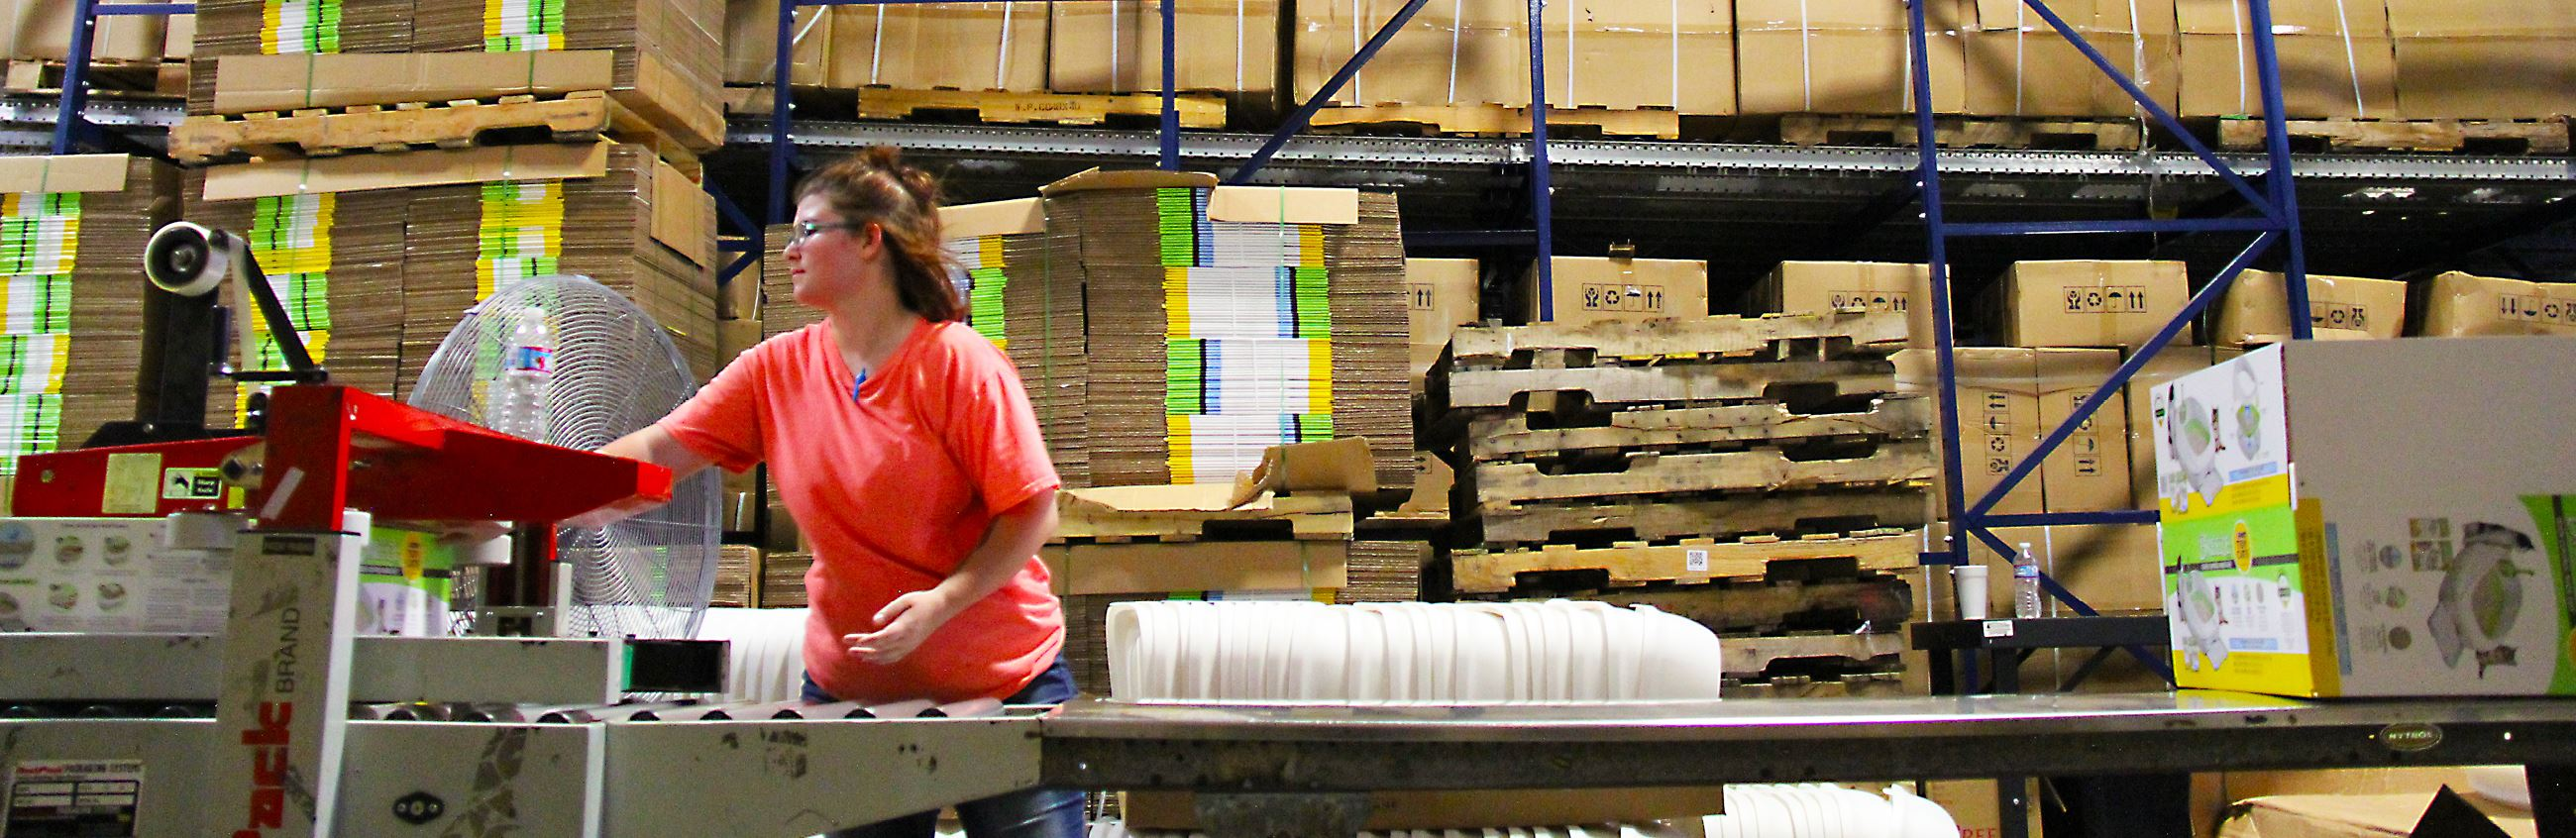 Young woman working in a warehouse